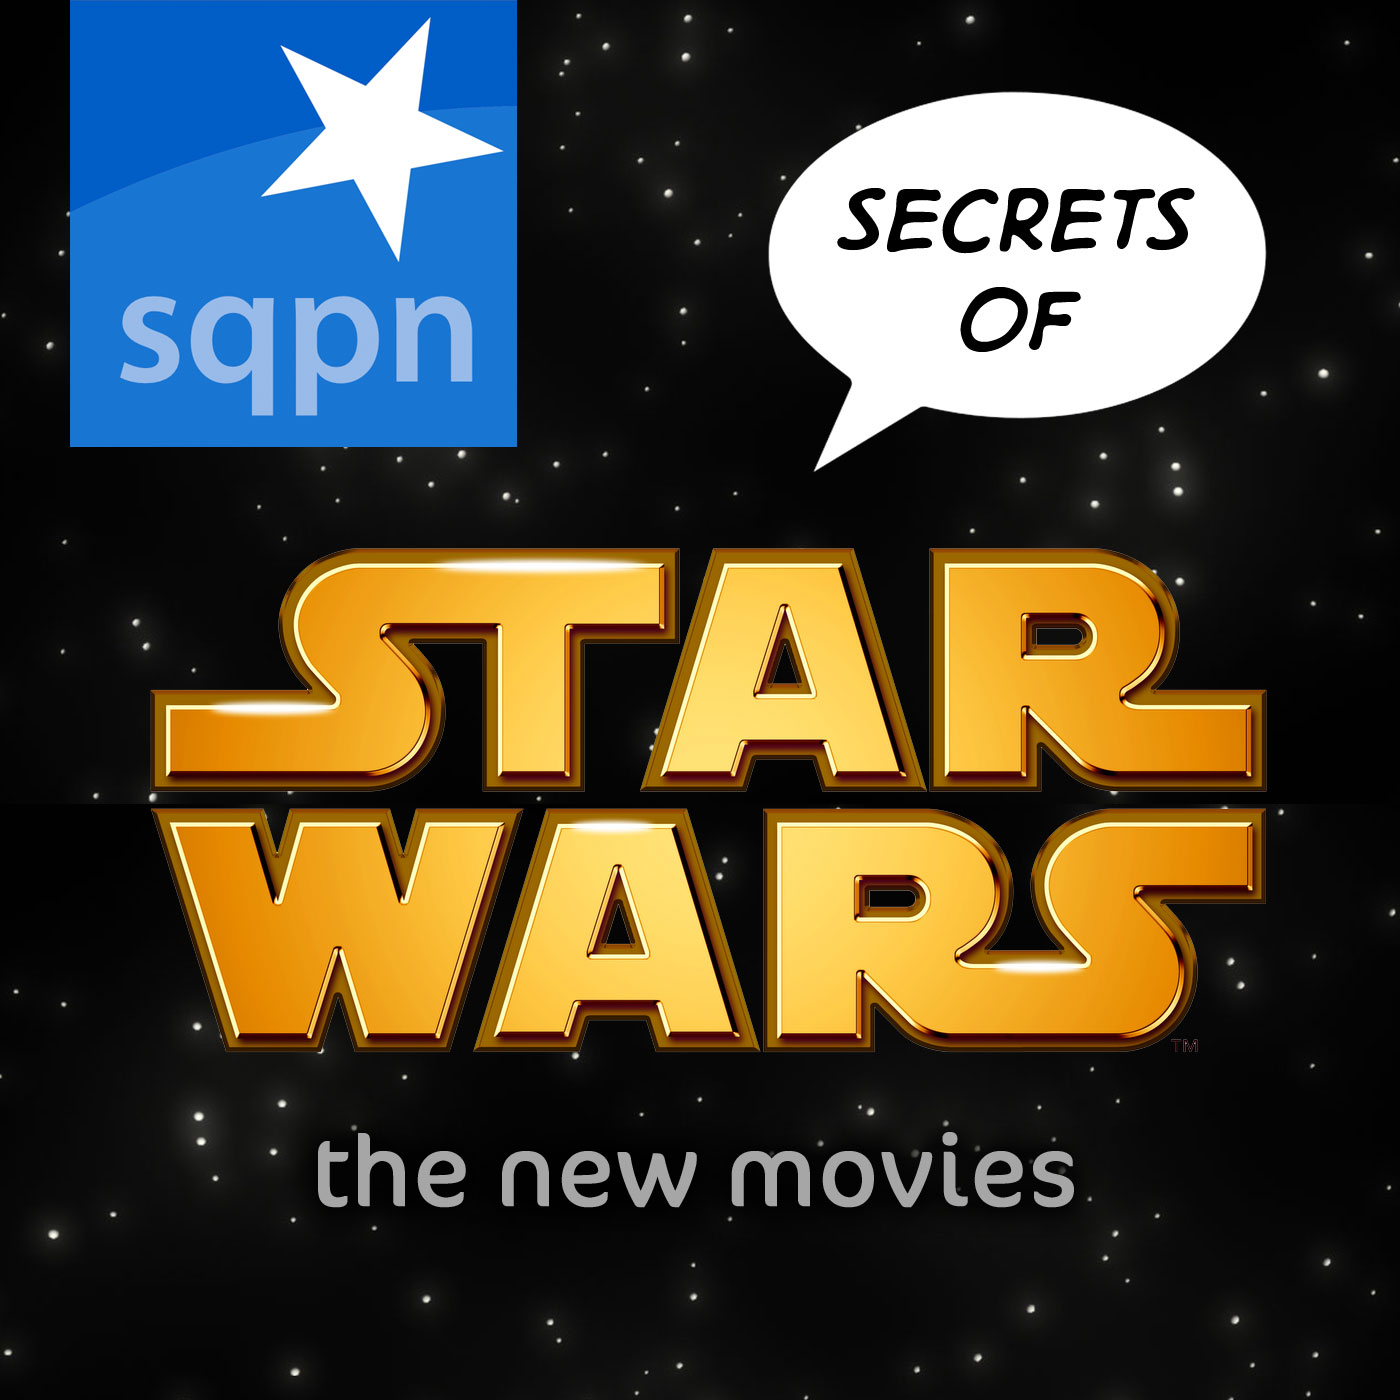 SQPN: Secrets of Star Wars